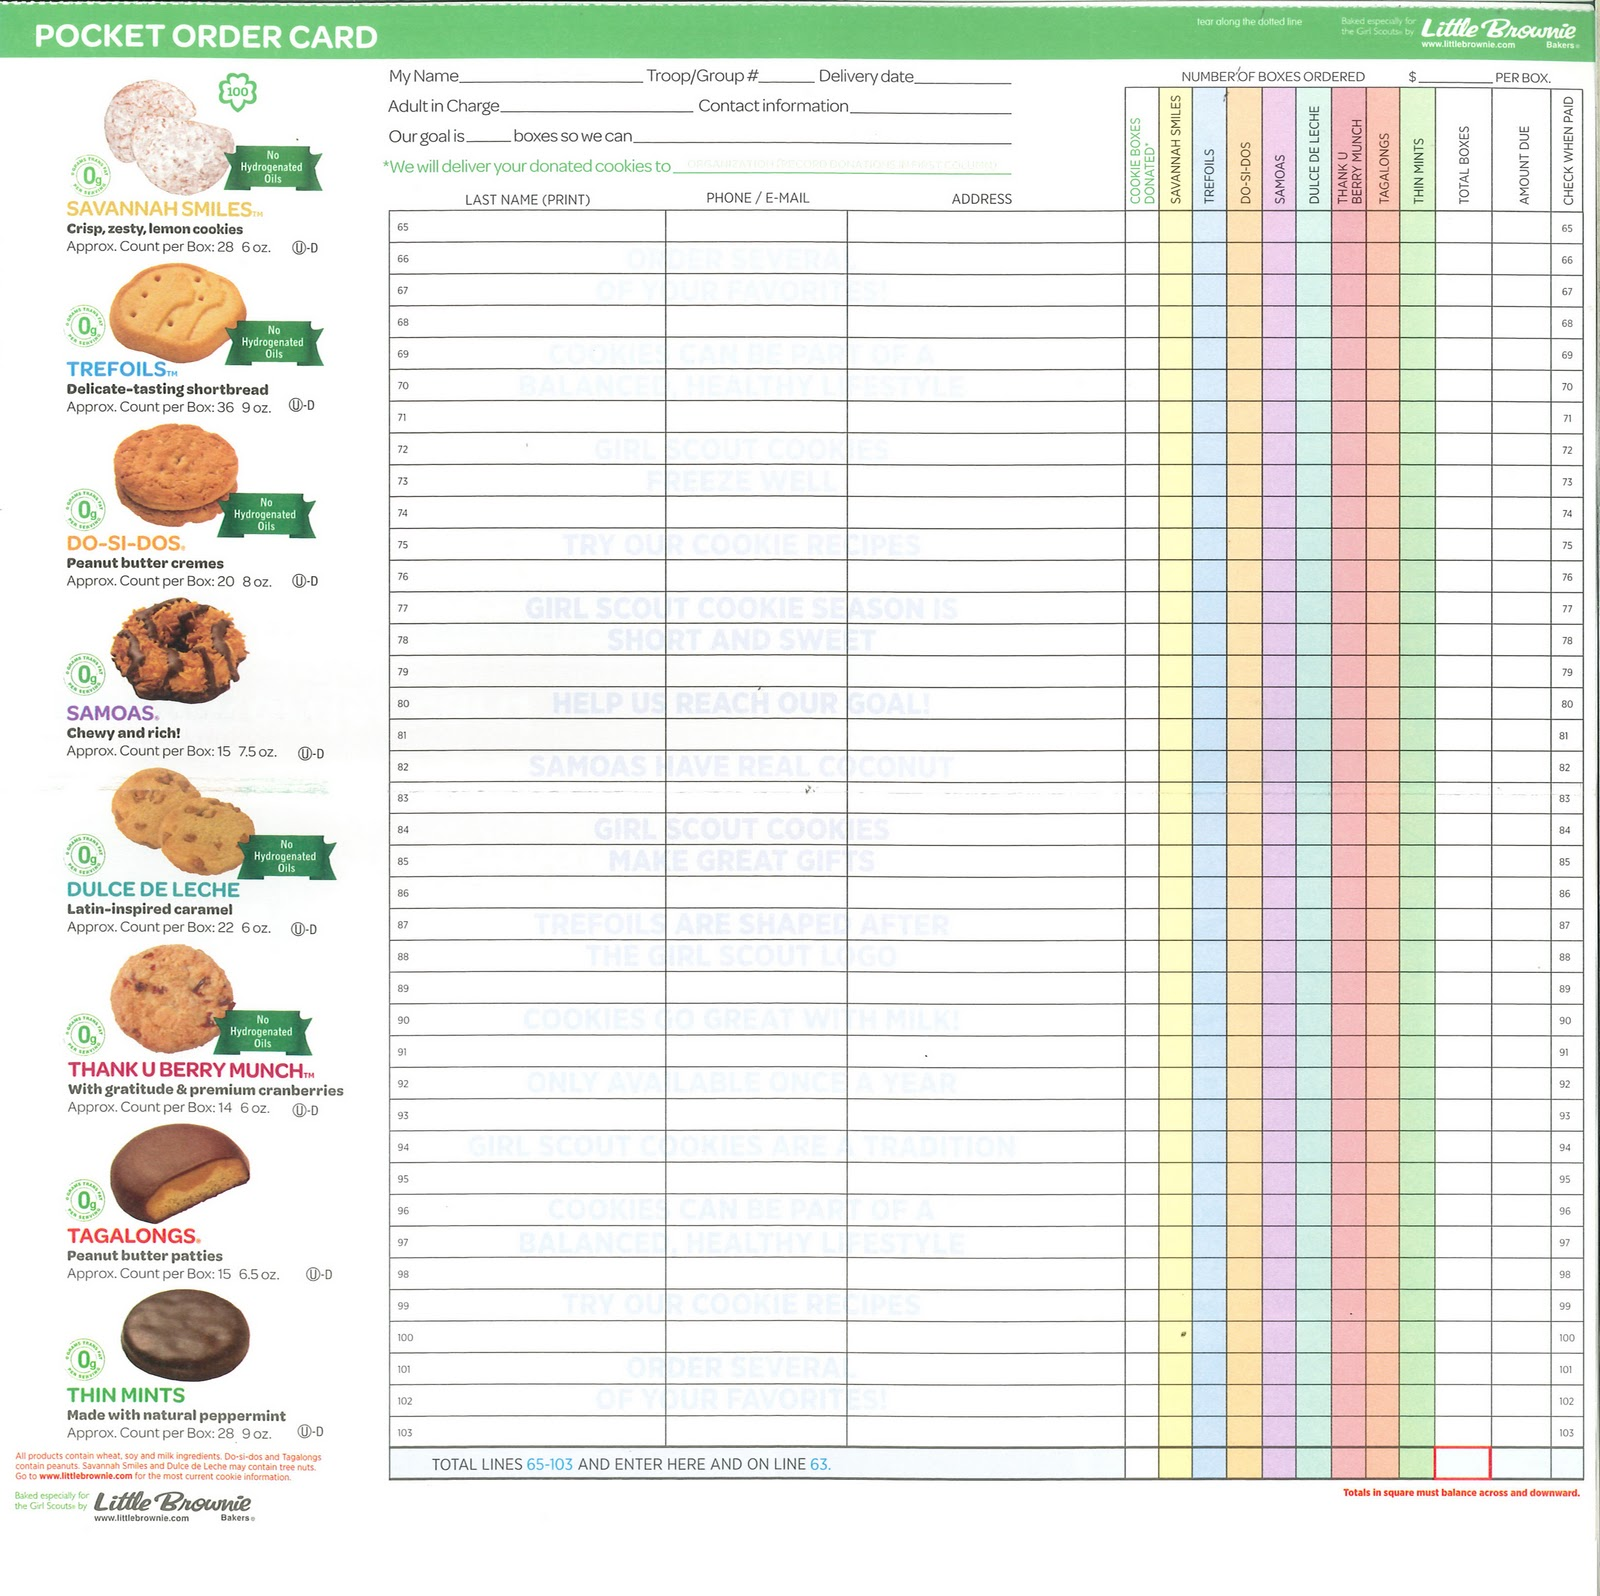 Légend image intended for girl scout cookie order form printable